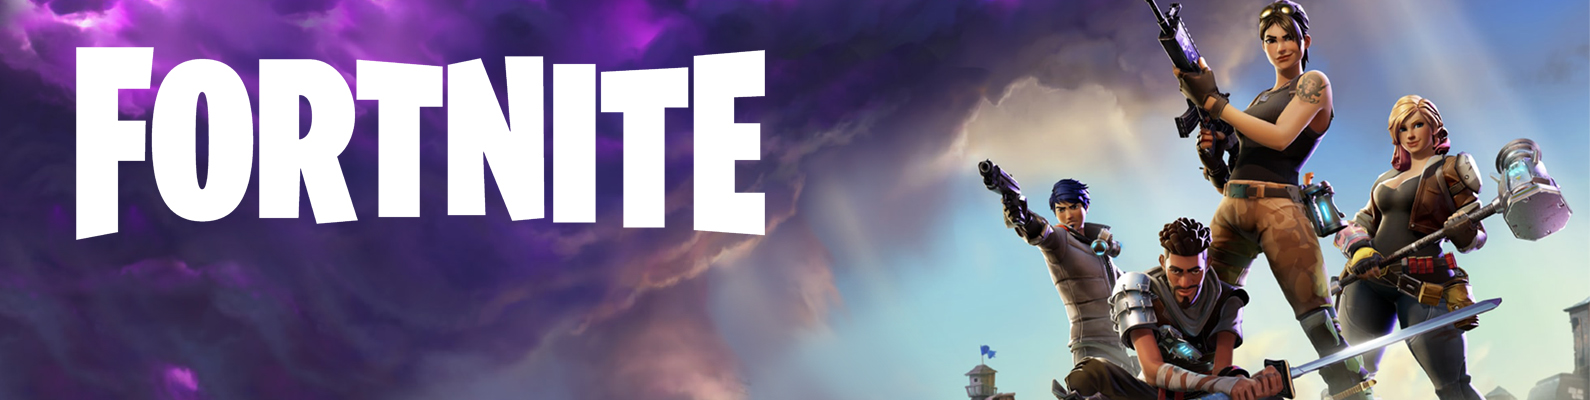 Fortnite Deluxe Edition is Now Available In Stores